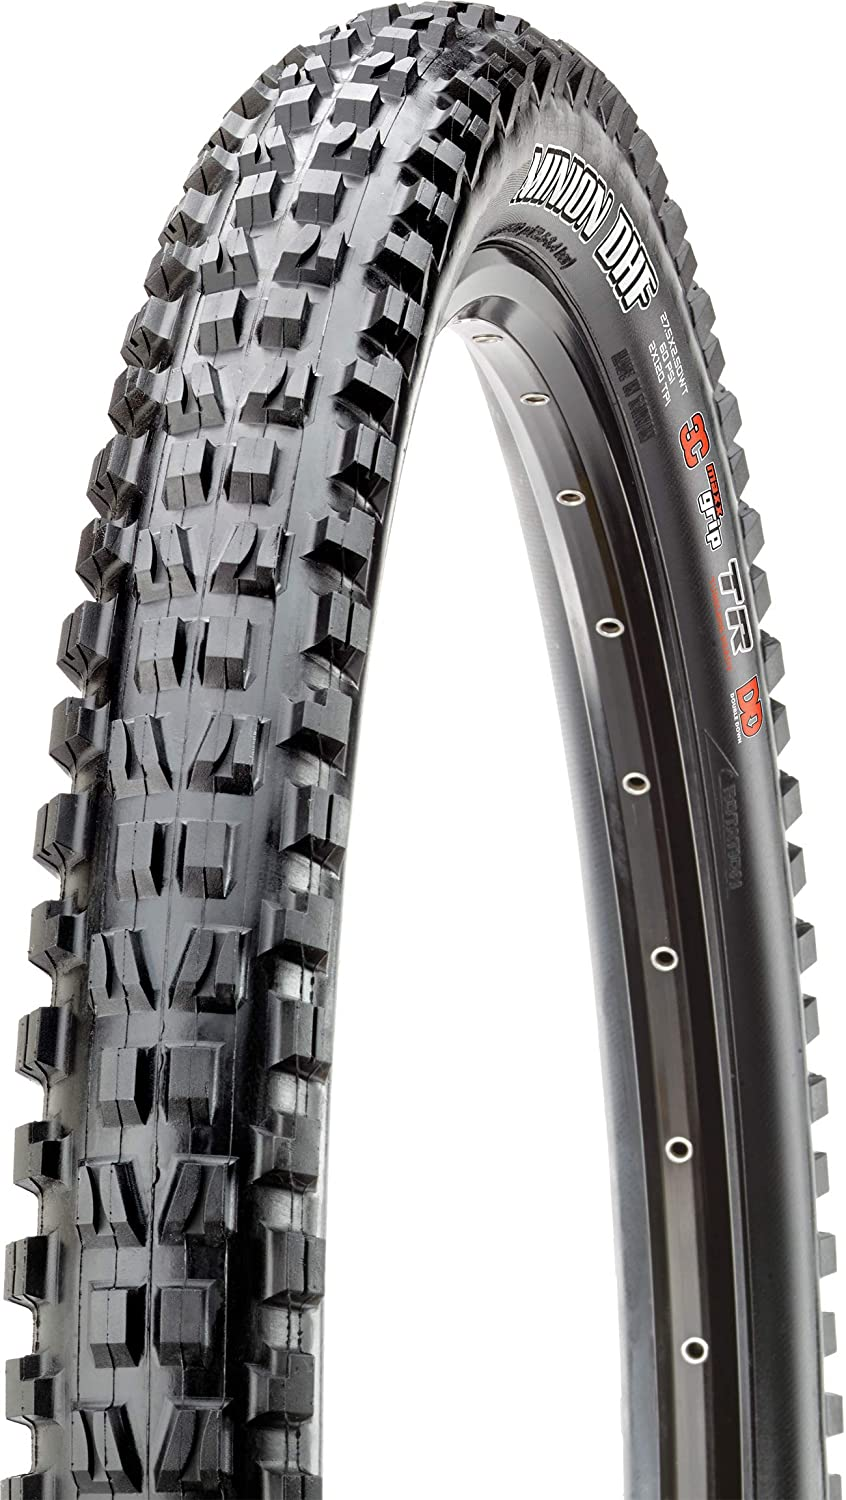 Maxxis Minion DHF Mountain Bike Tire 27.5 x 2.3